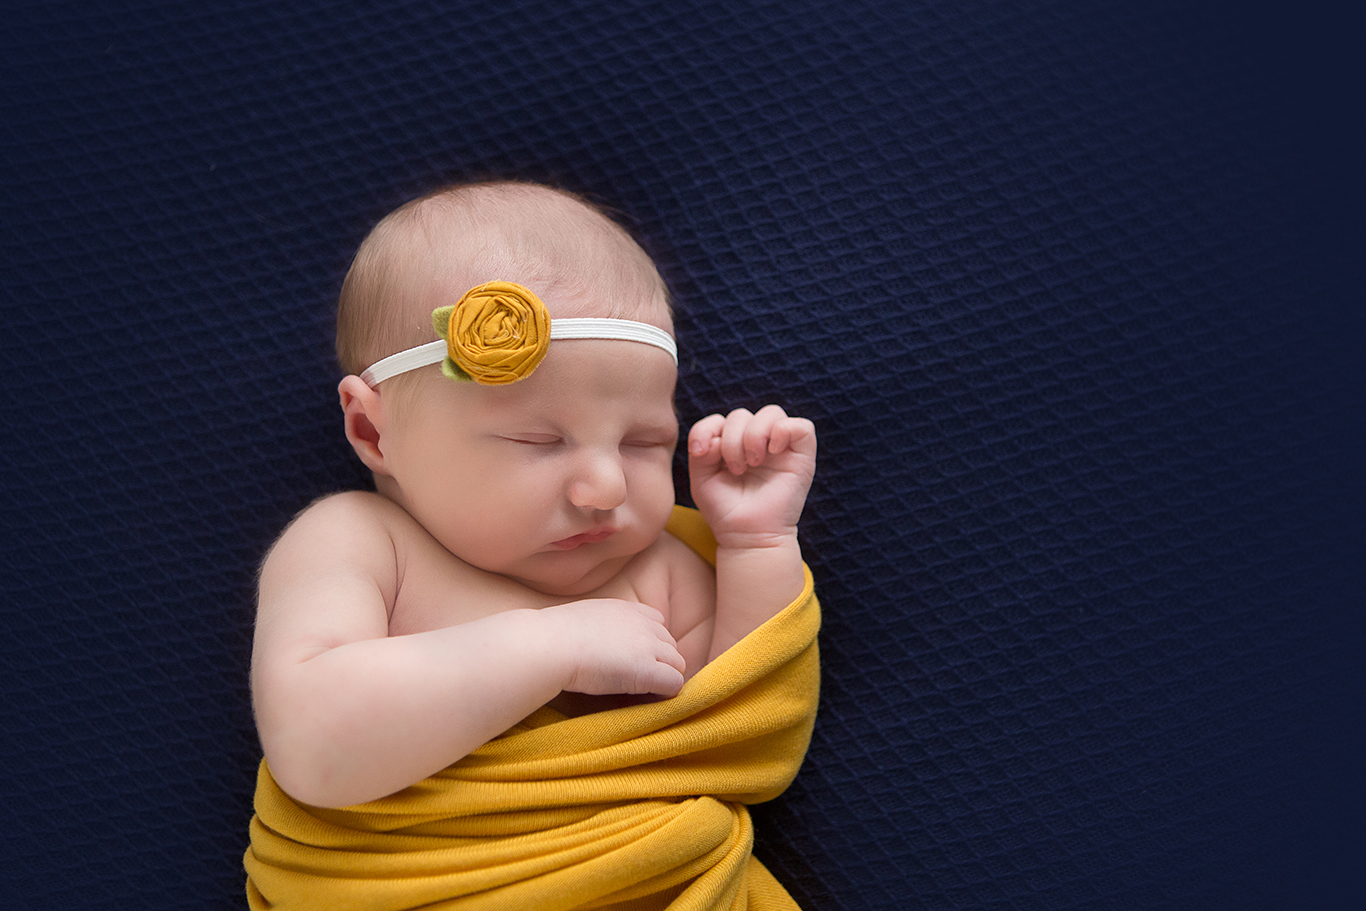 newborn sleeping in gold and blue